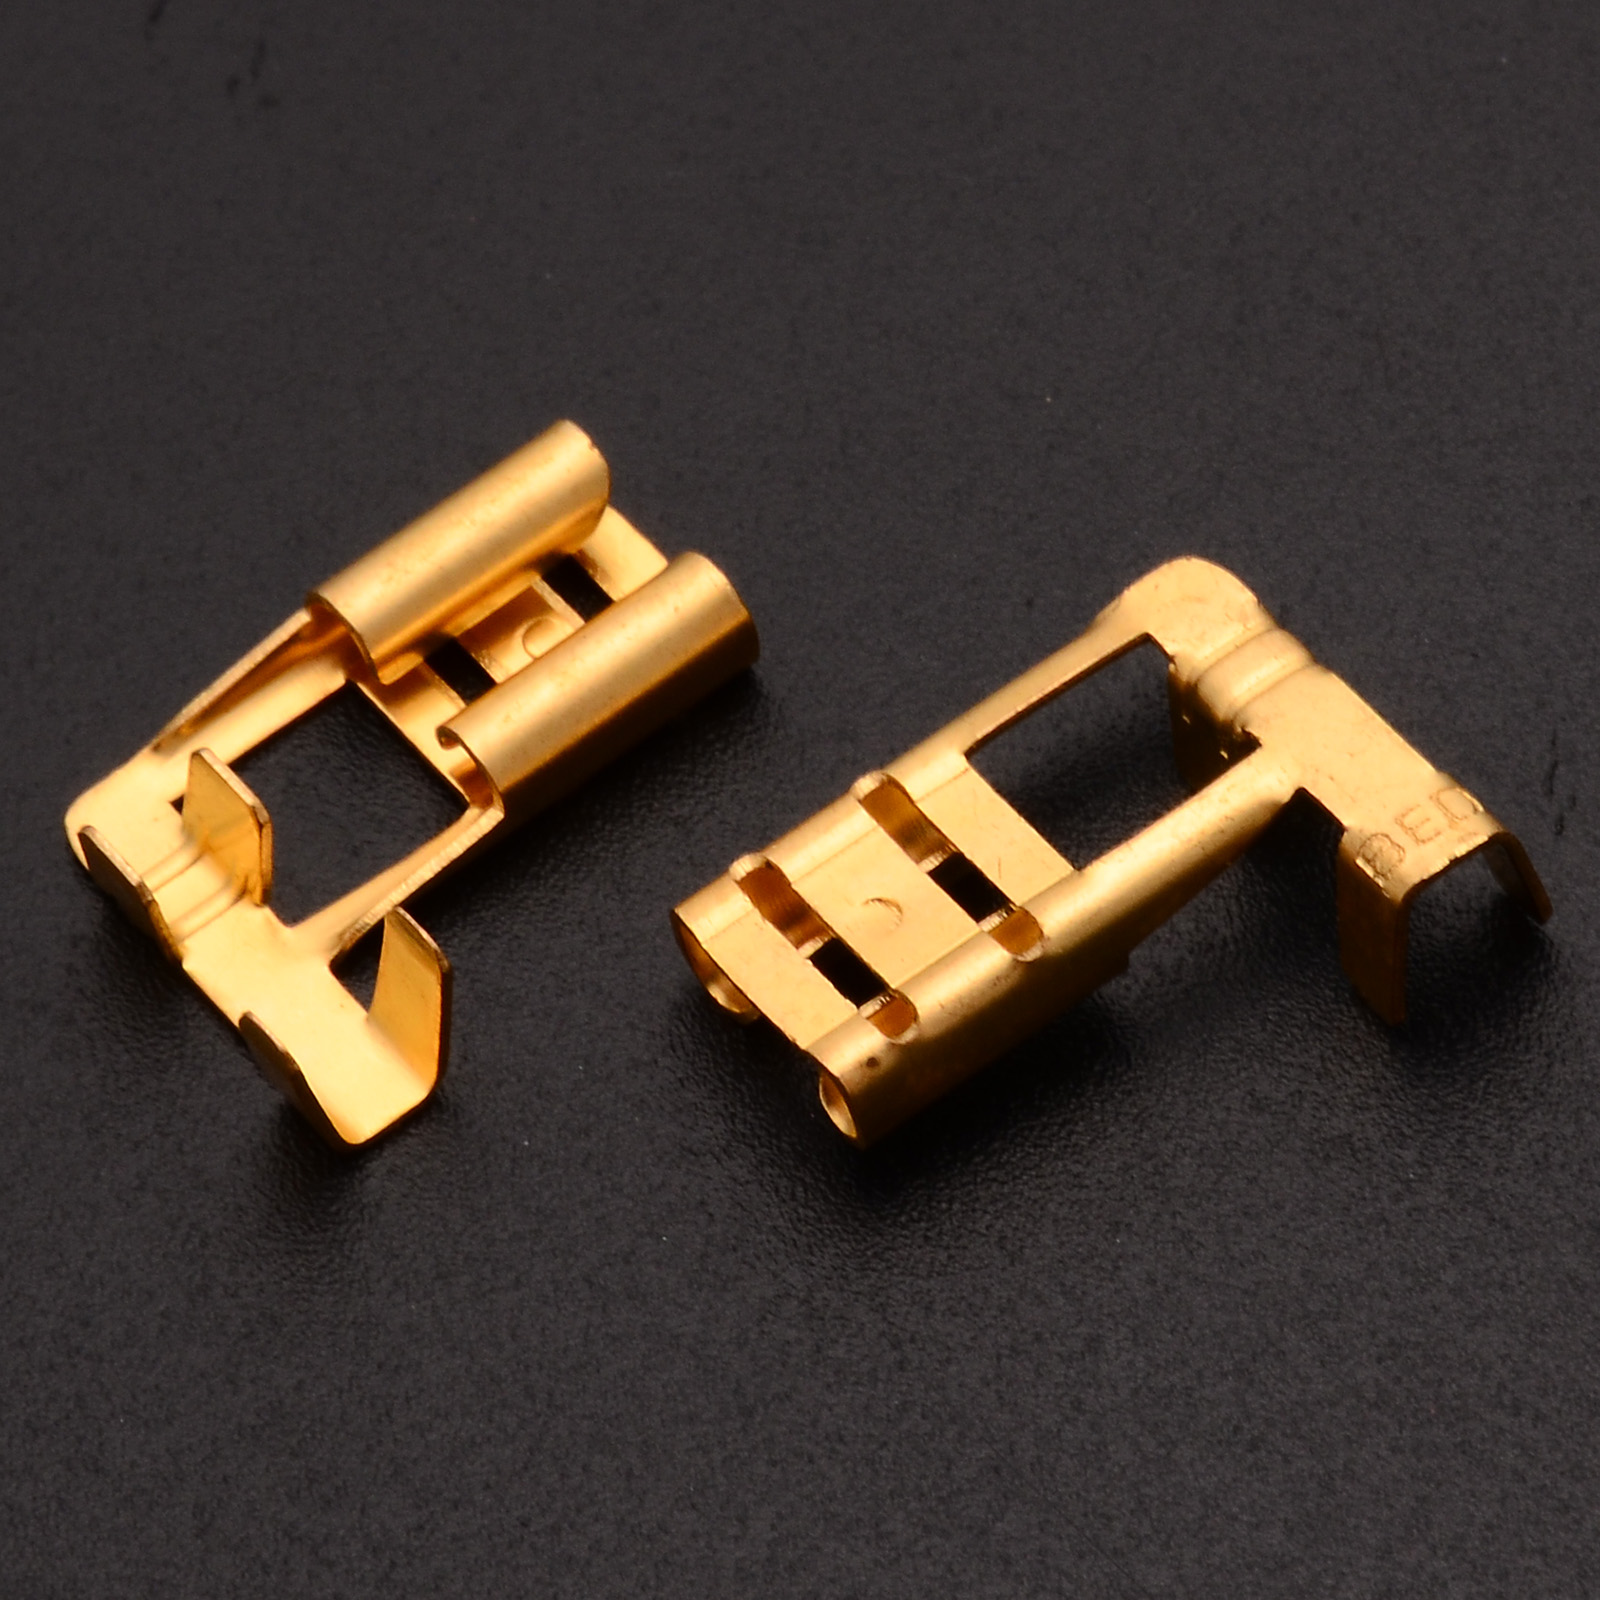 144pcs 2.8mm Electrical Connector Automotive Motorcycle Brass Bullet Connecto…